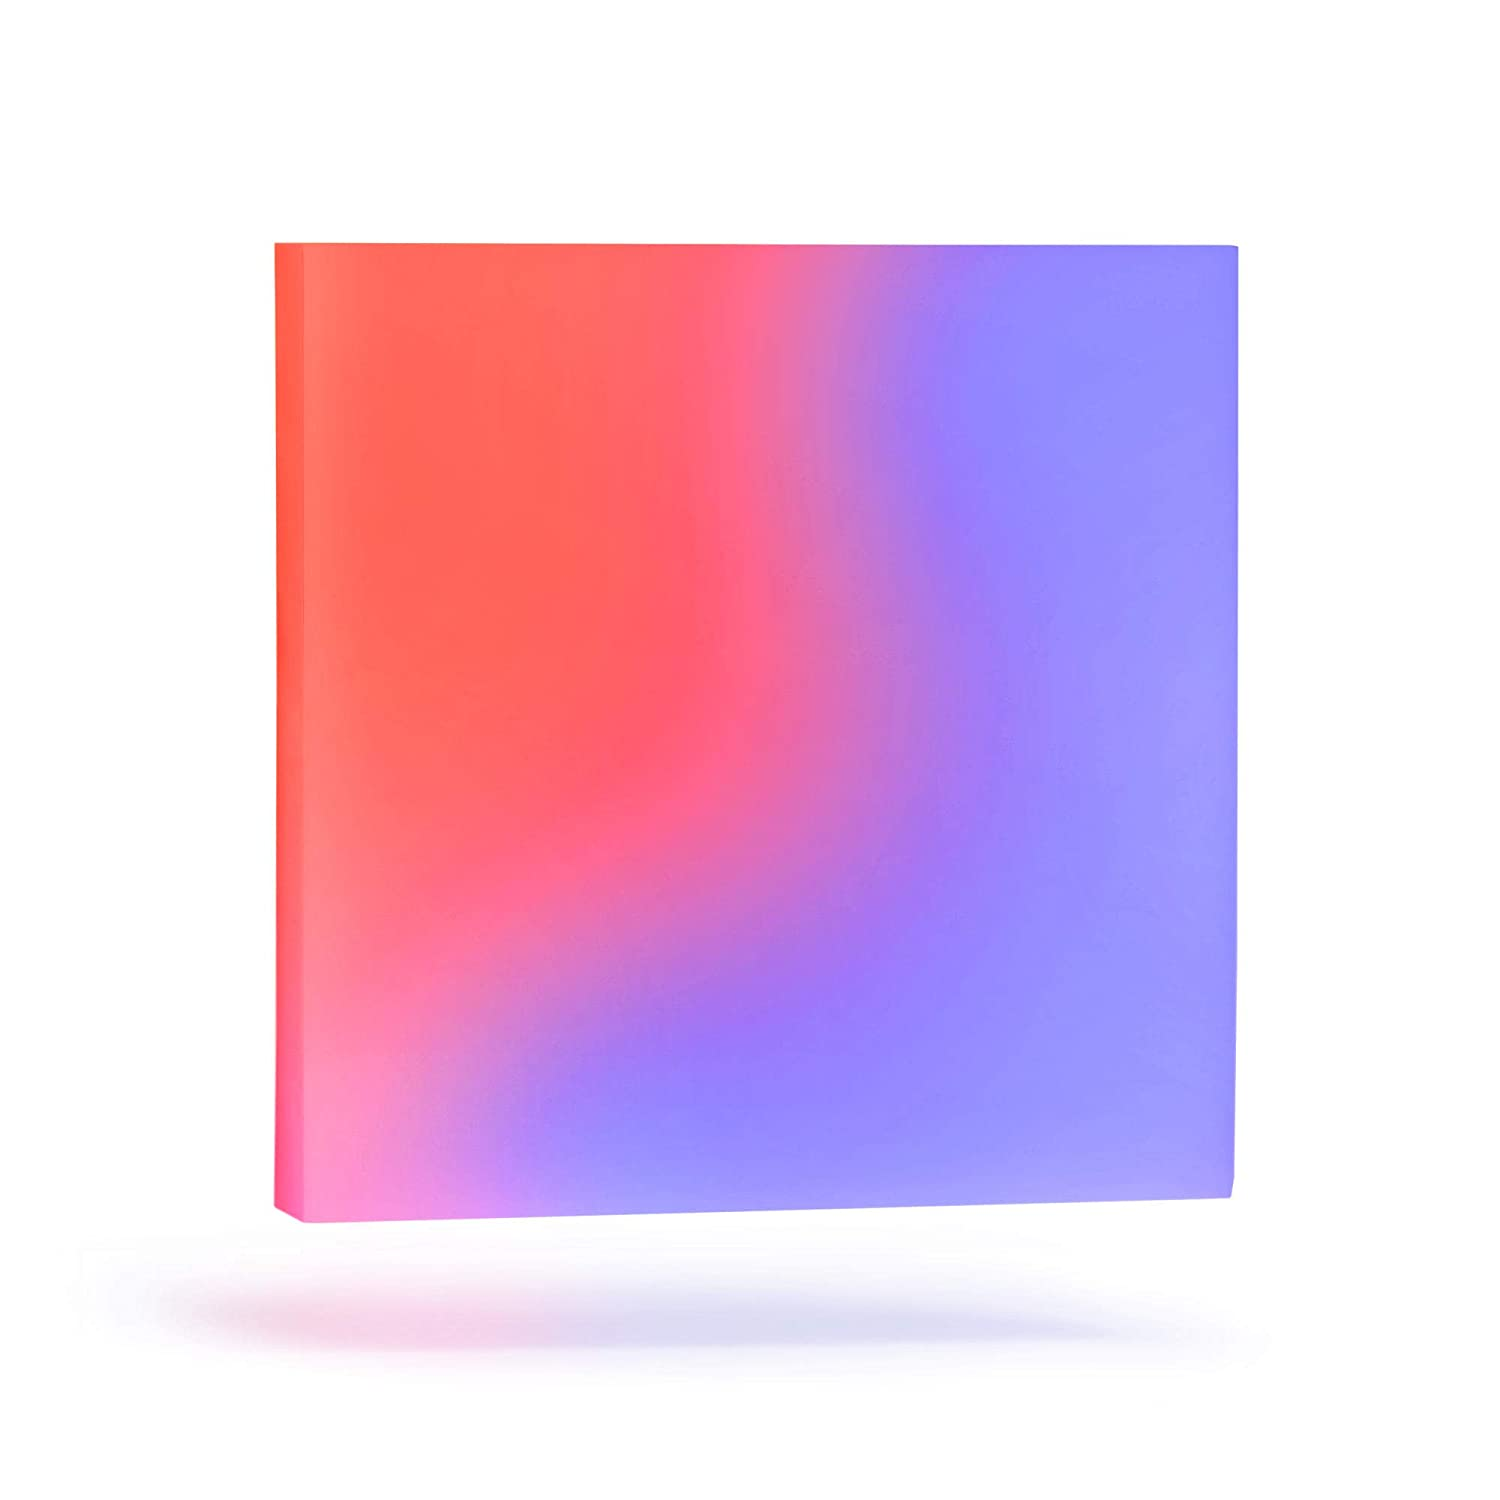 LIFX Tile Modular Light Surface, Adjustable, Multicolor, Dimmable, No Hub Required, Works with Alexa, Apple HomeKit and the Google Assistant, Pack of 5